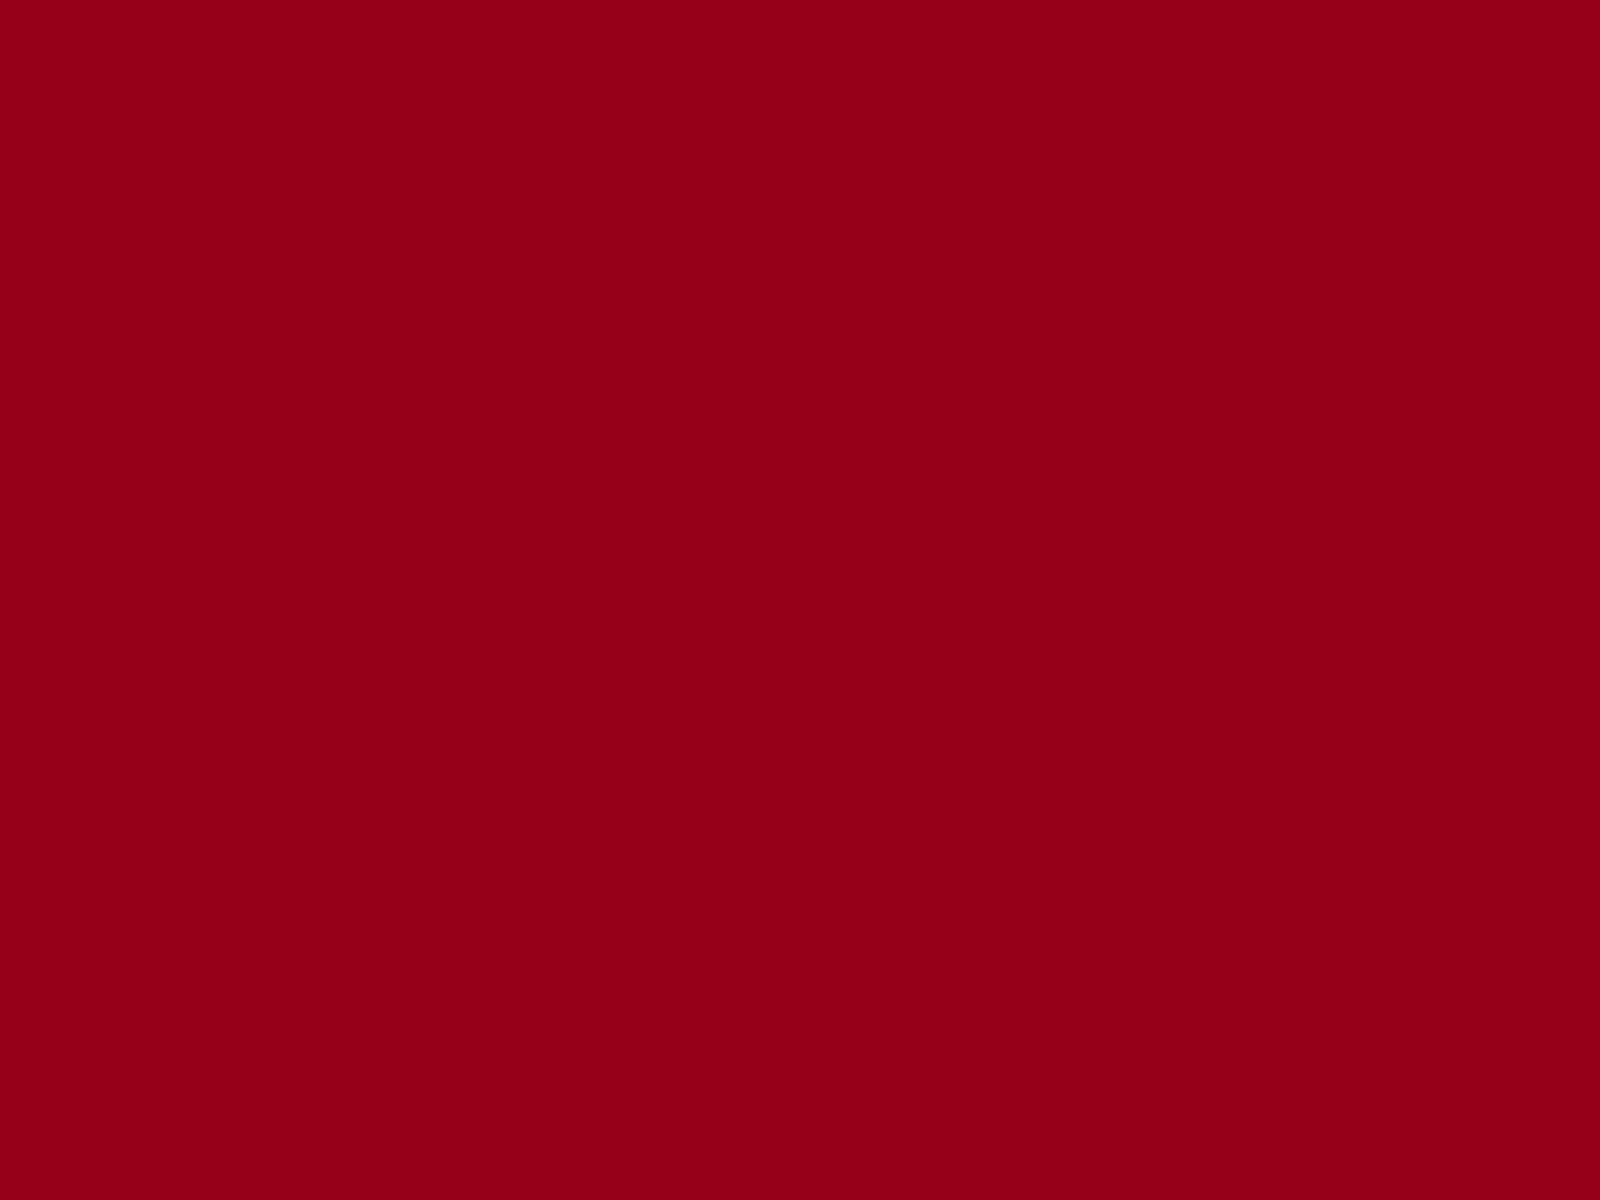 1600x1200 Carmine Solid Color Background